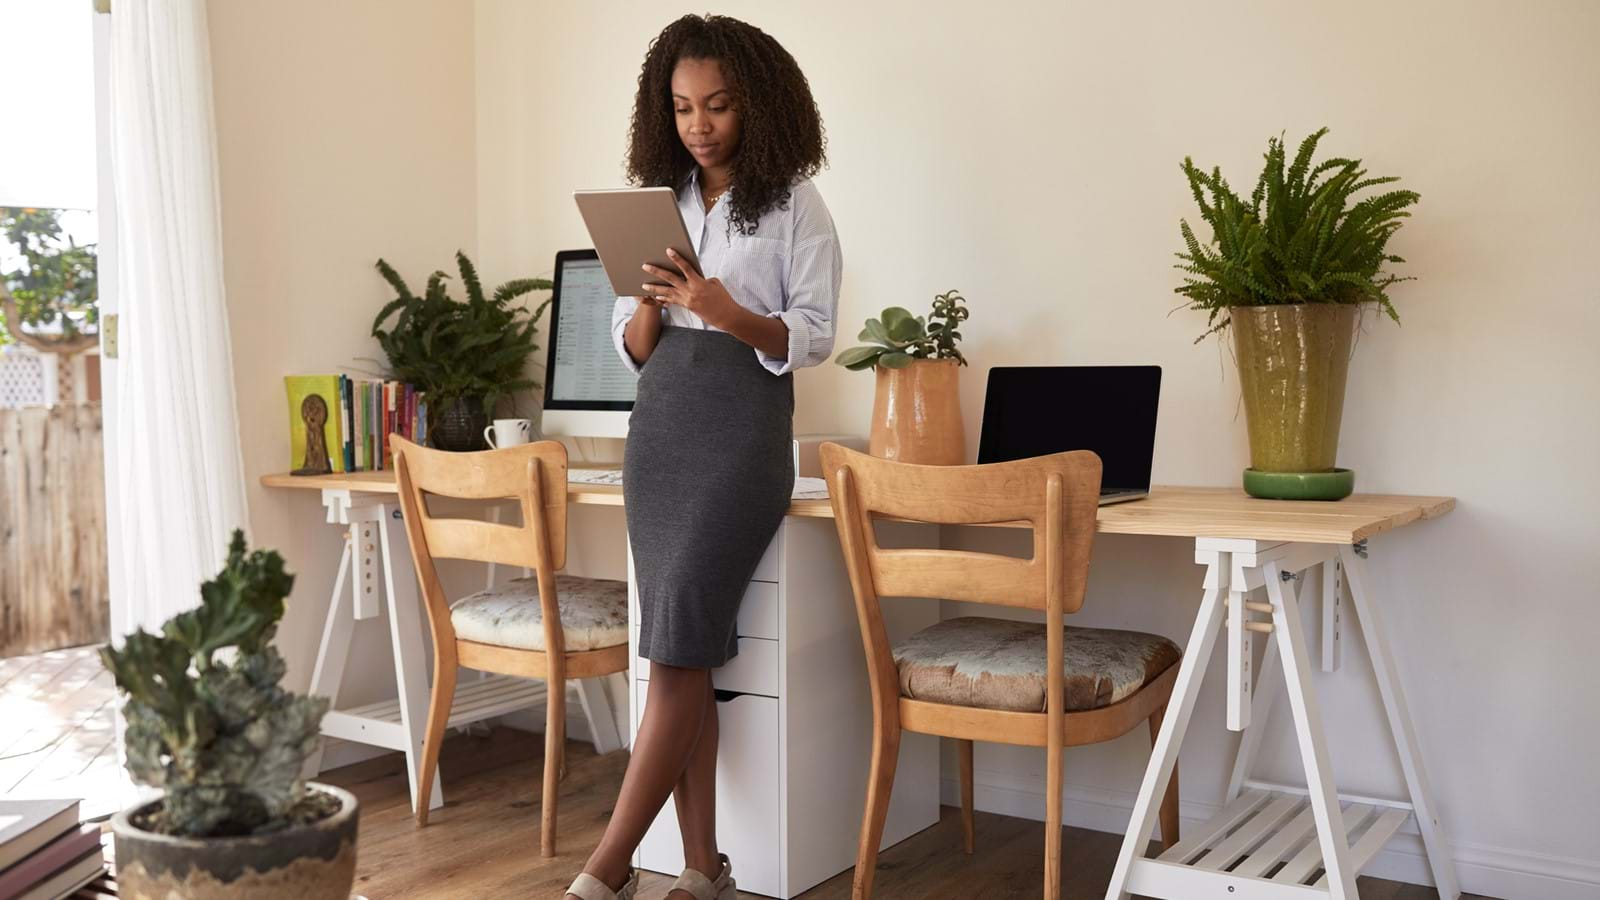 Employee working remotely from an employee experience platform